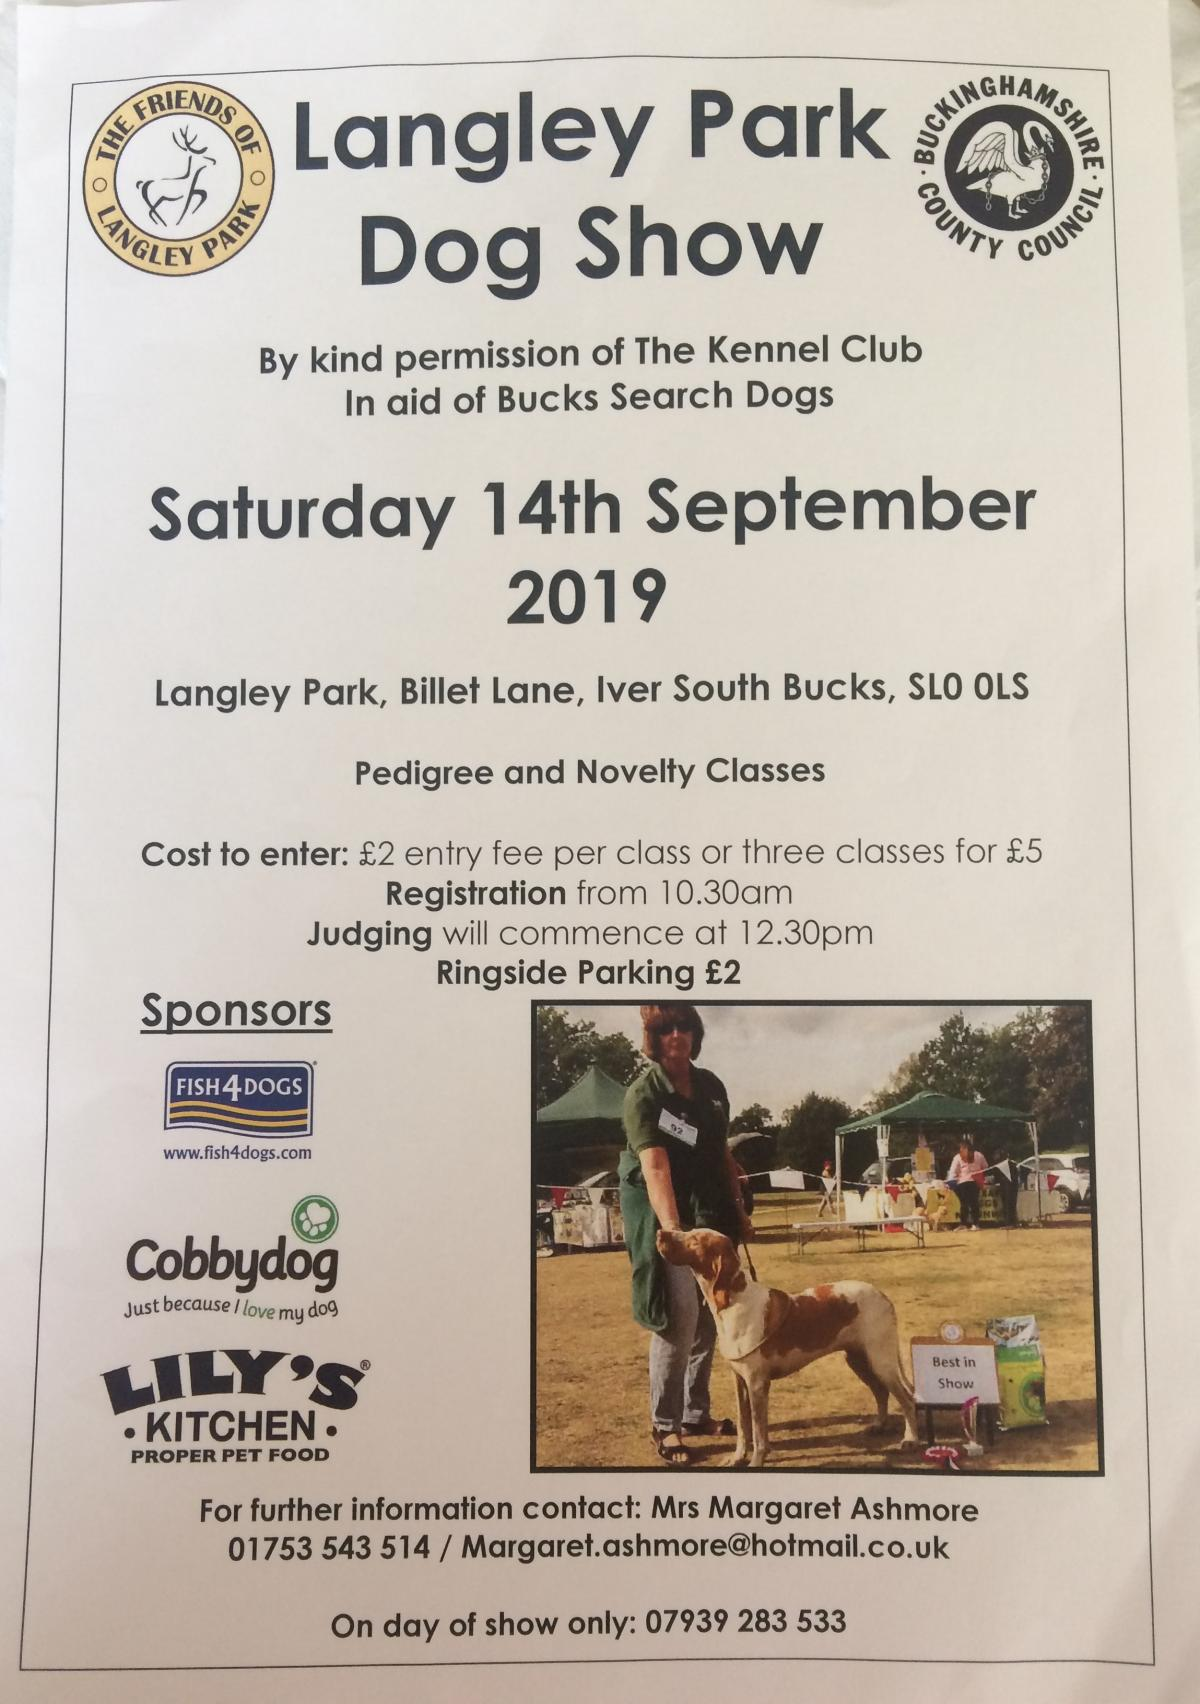 Langley Park Dog Show is coming | Slough Observer